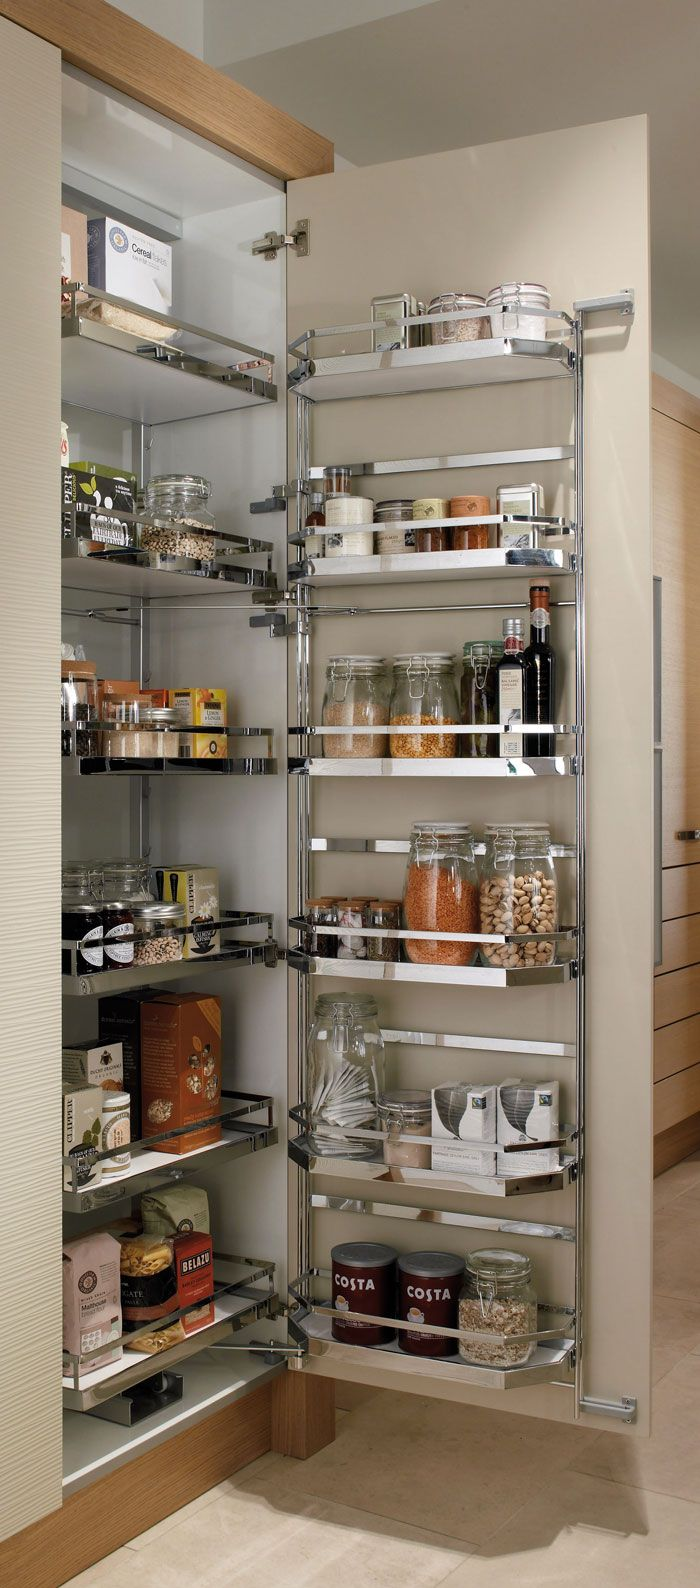 Great Kitchen Storage 17 Best Ideas About Kitchen Storage On Pinterest Storage